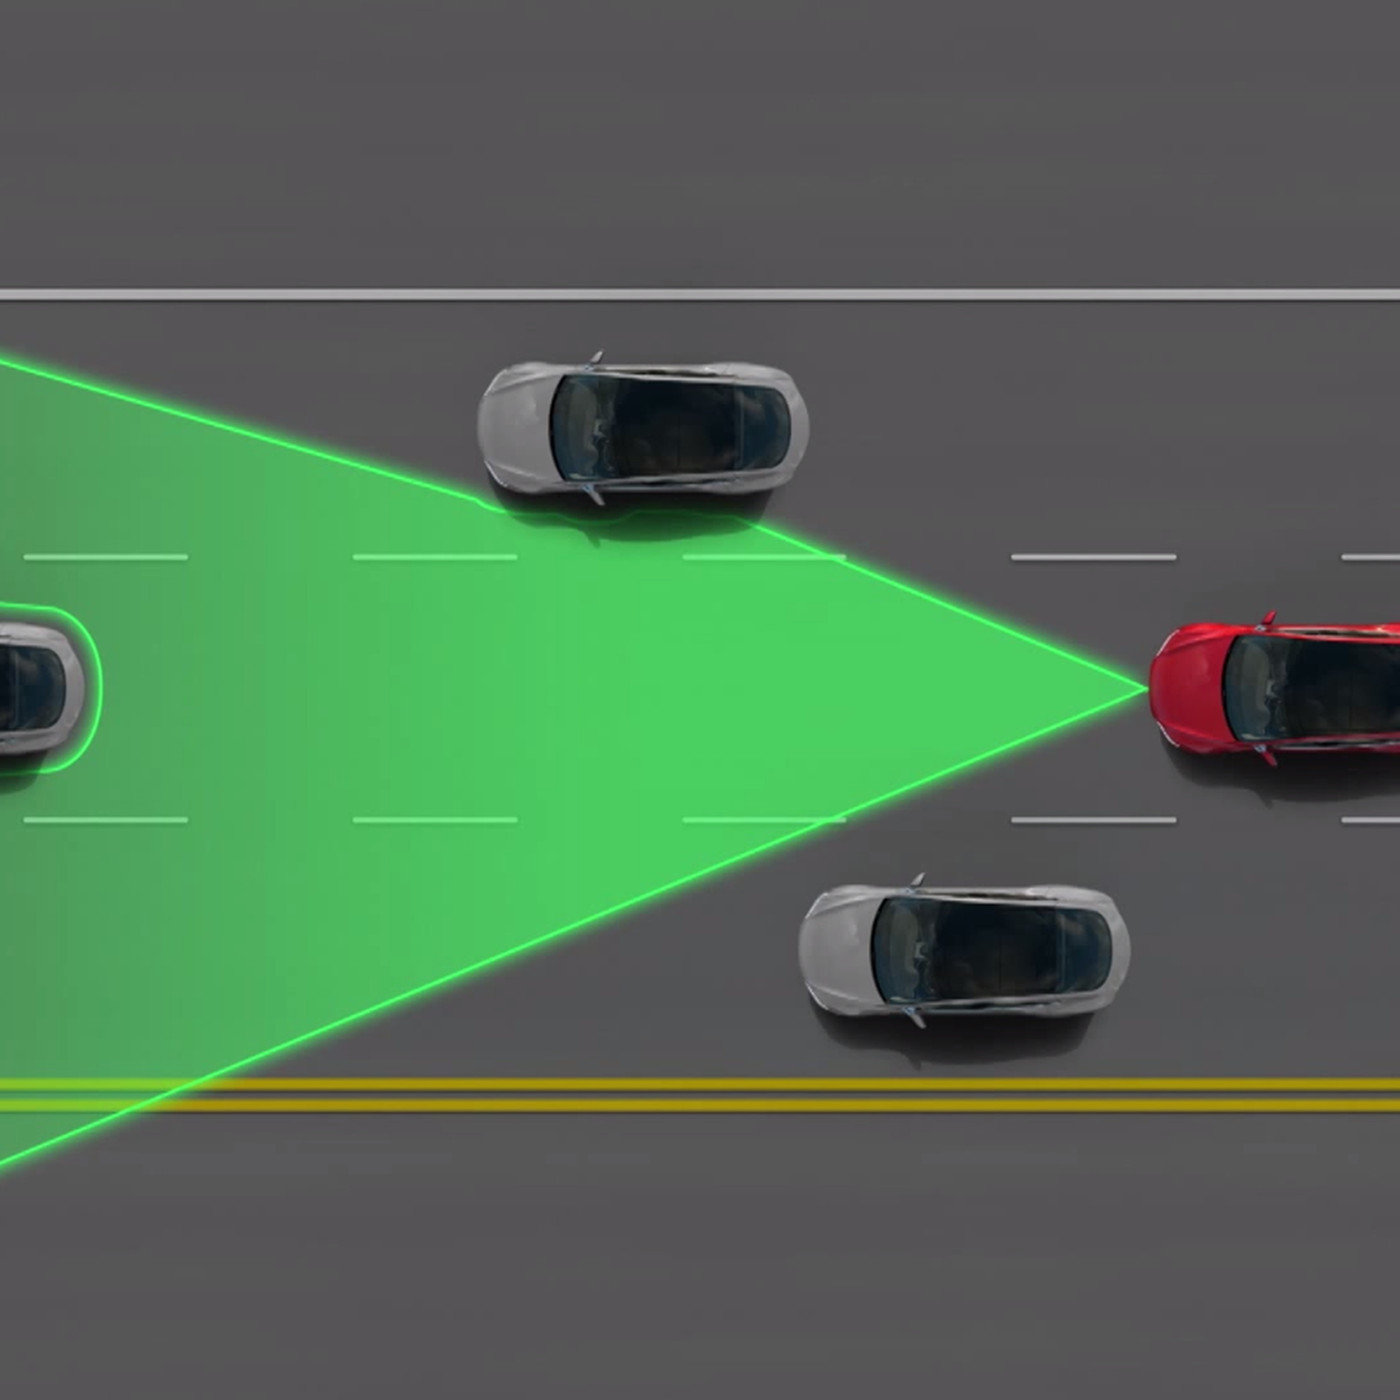 Driver Killed In Tesla Autopilot Crash Filmed A Close Call Earlier This Year The Verge